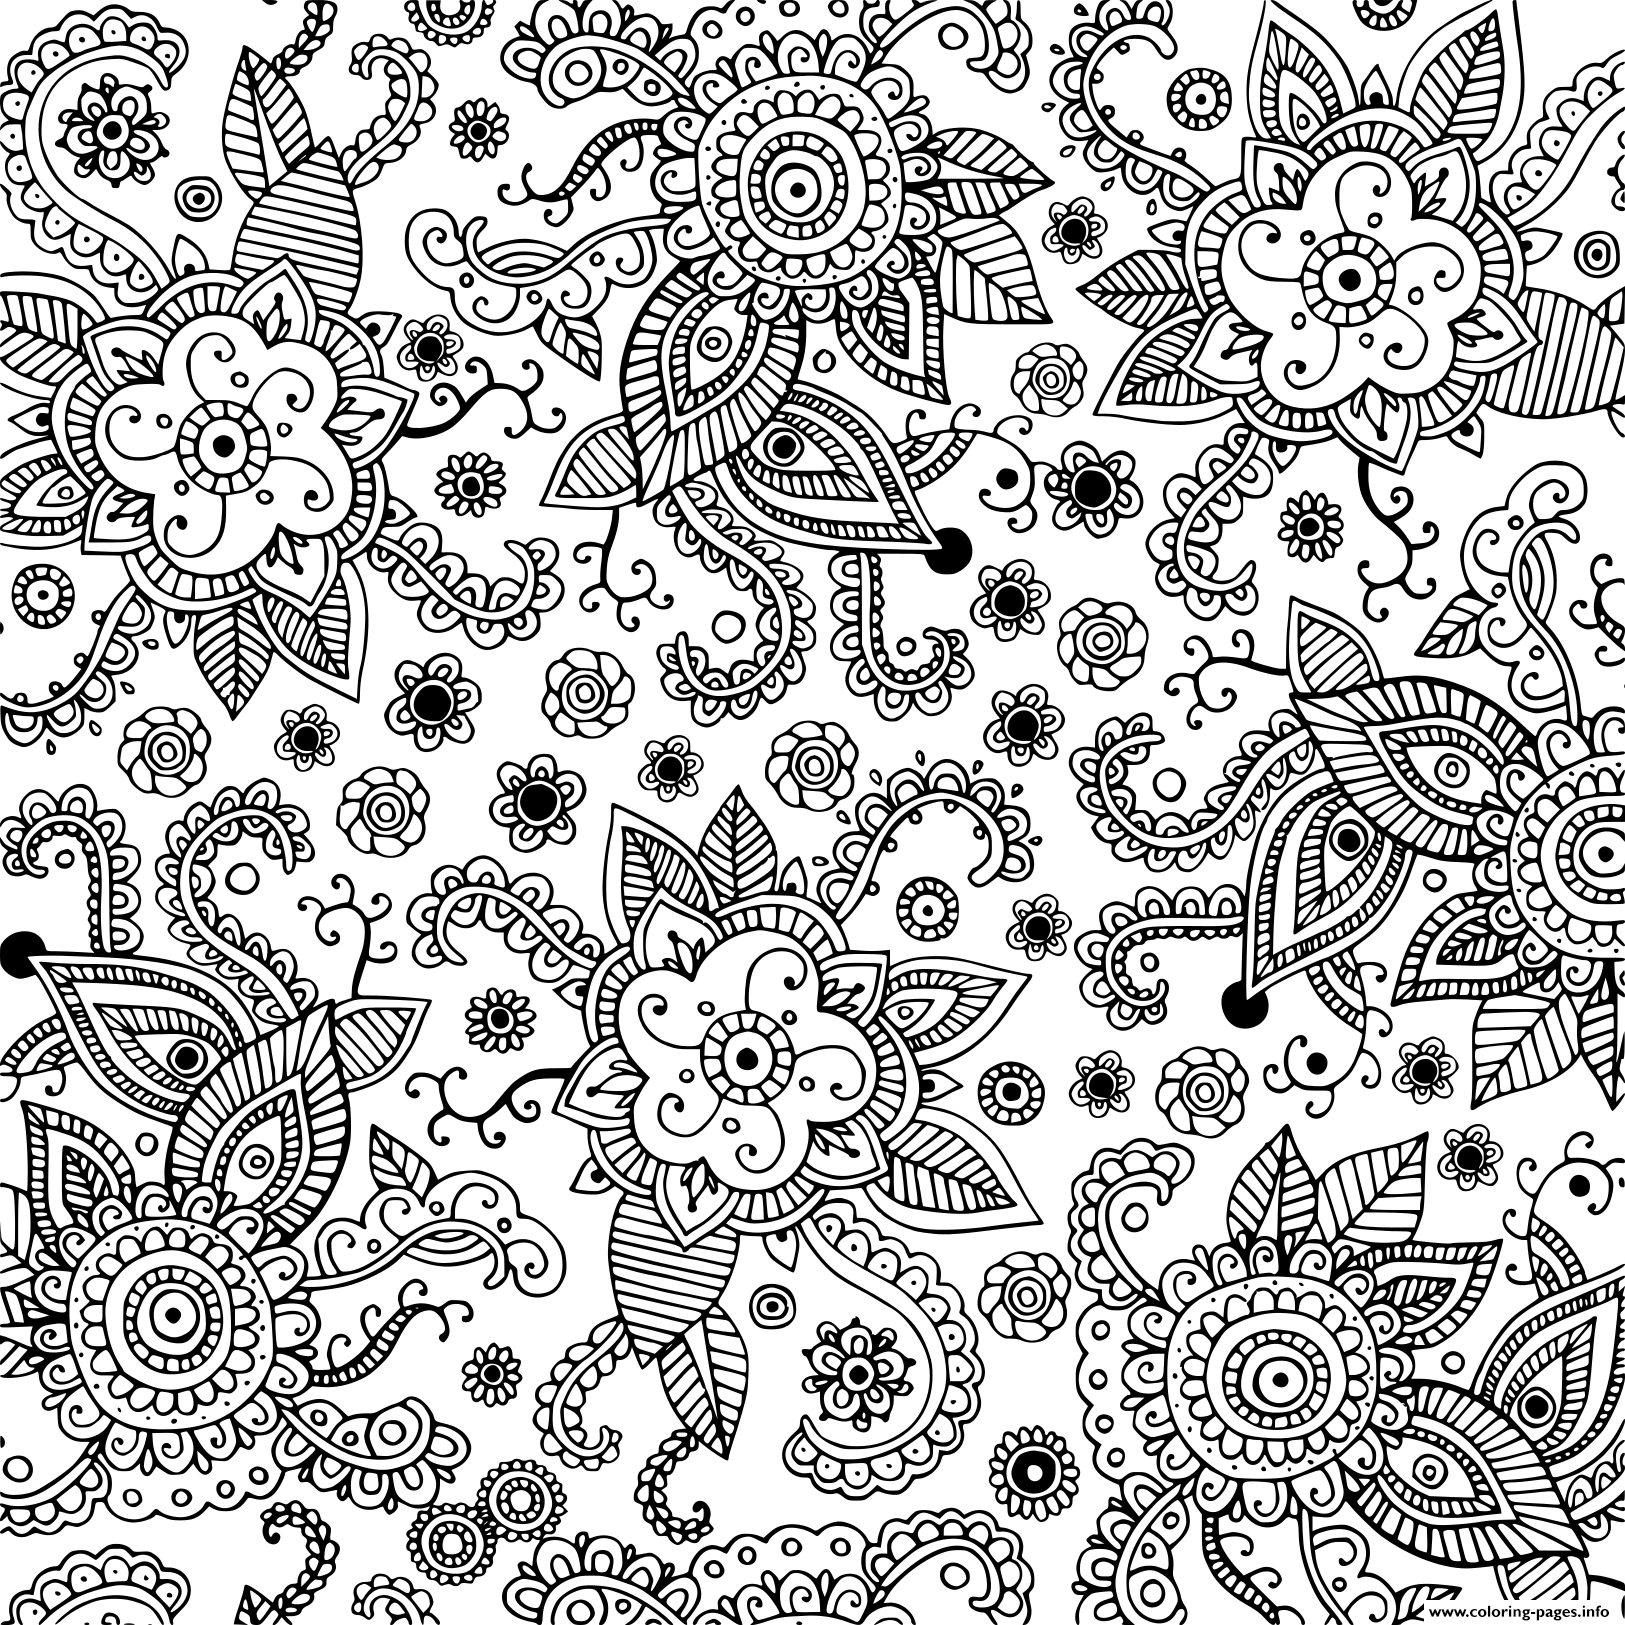 printable doodlebop coloring pages - photo#20